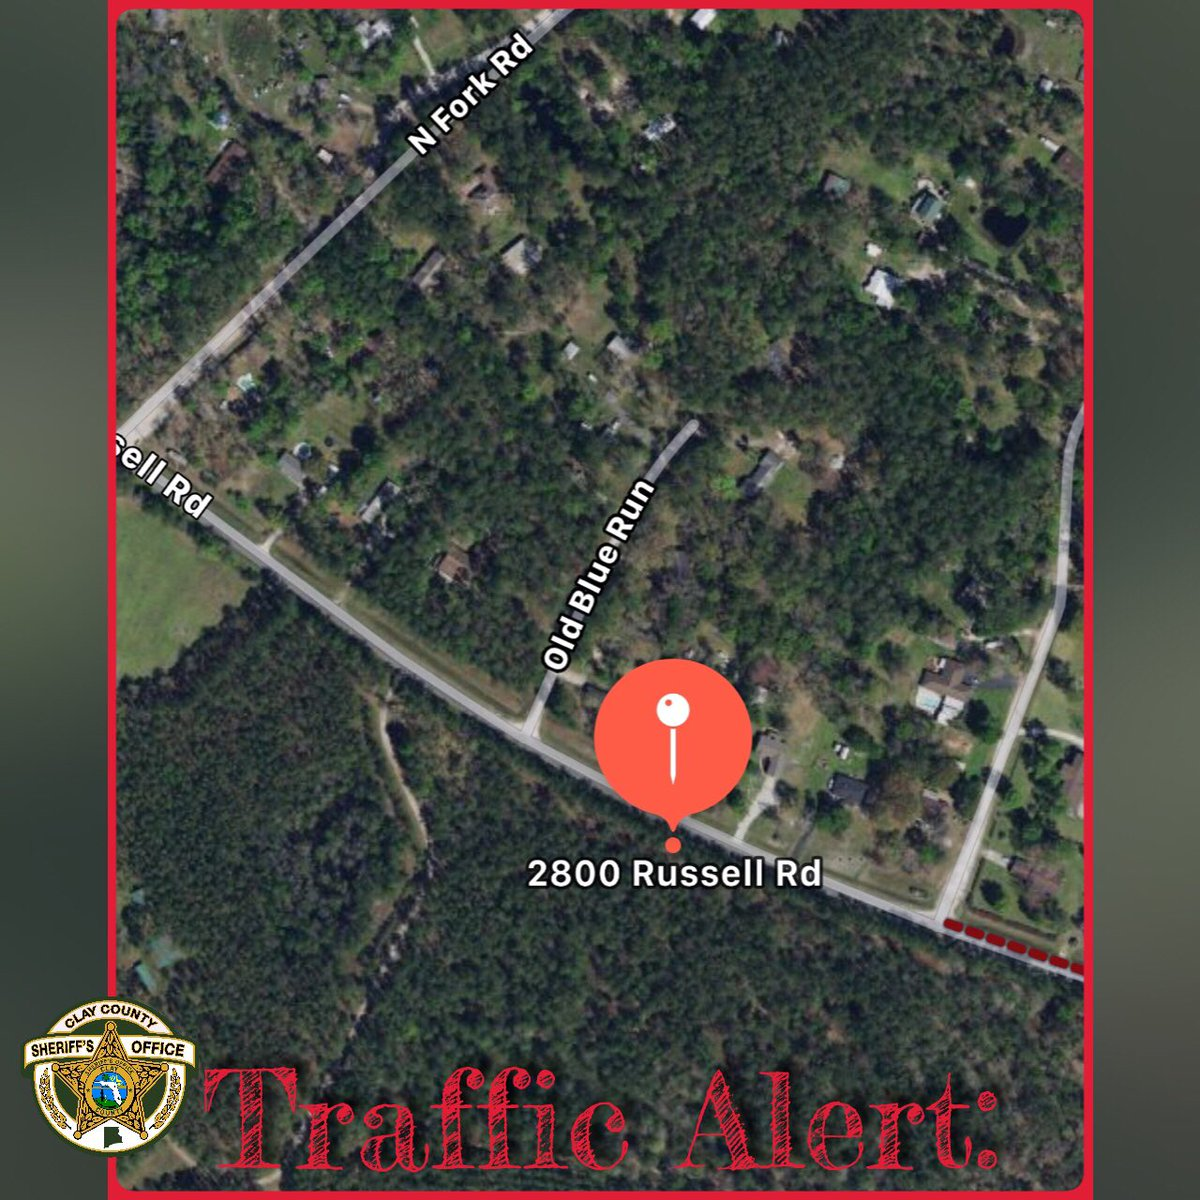 TRAFFIC ALERT: We are assisting Florida Highway Patrol on a serious traffic crash, near the 2800 block of Russell Road. The entire roadway n that area is closed down, so please seek an alternate route if able. Updates will be handled by FHP. #CCSOFL<br>http://pic.twitter.com/aCeOJgfcvu